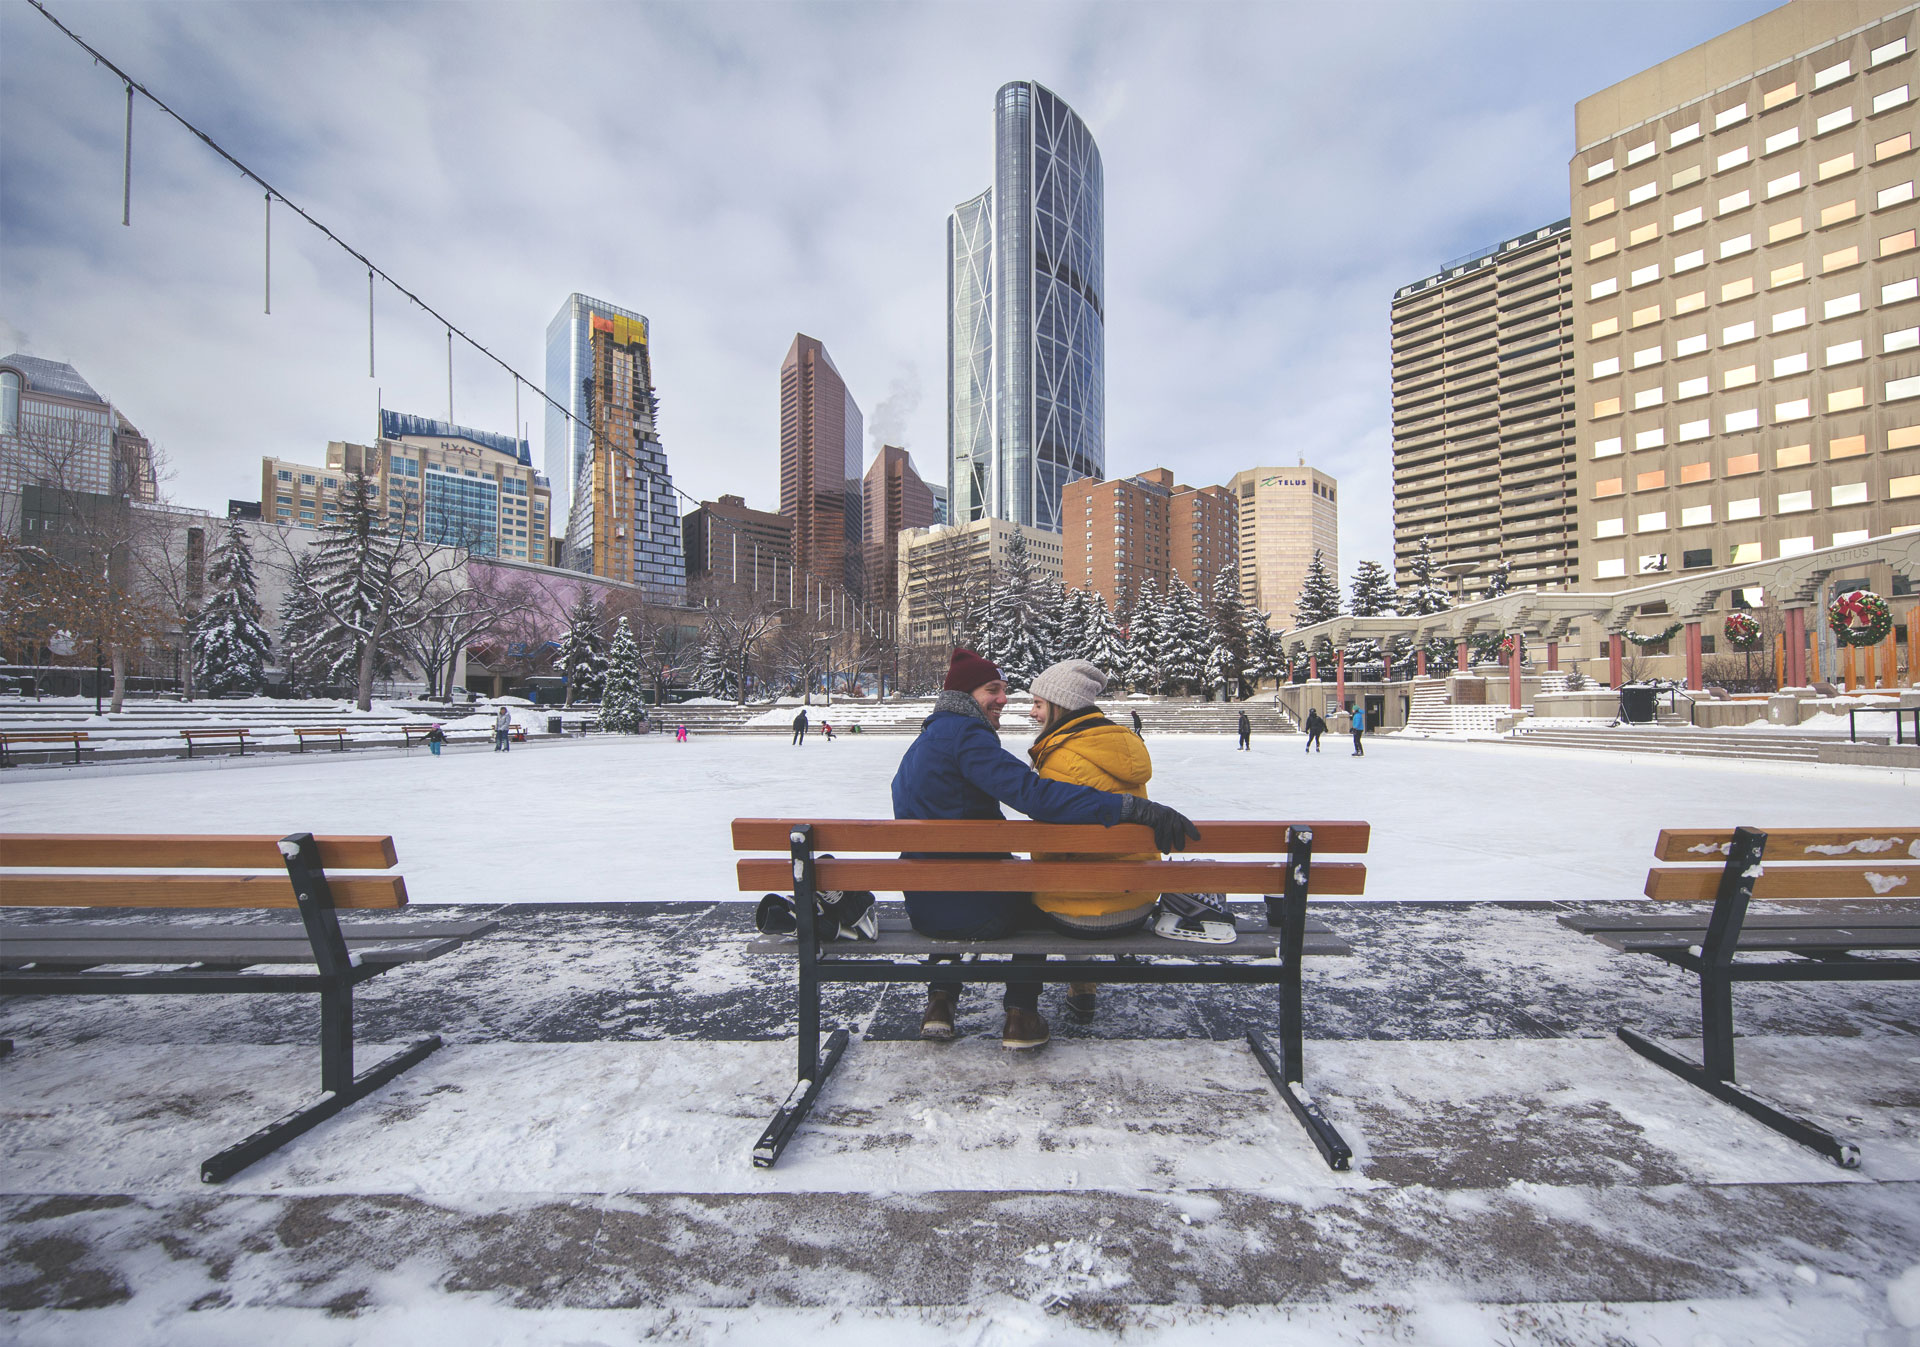 Take a romantic skate at Olympic Plaza (Photo credit: Travel Alberta/Roth & Ramberg).